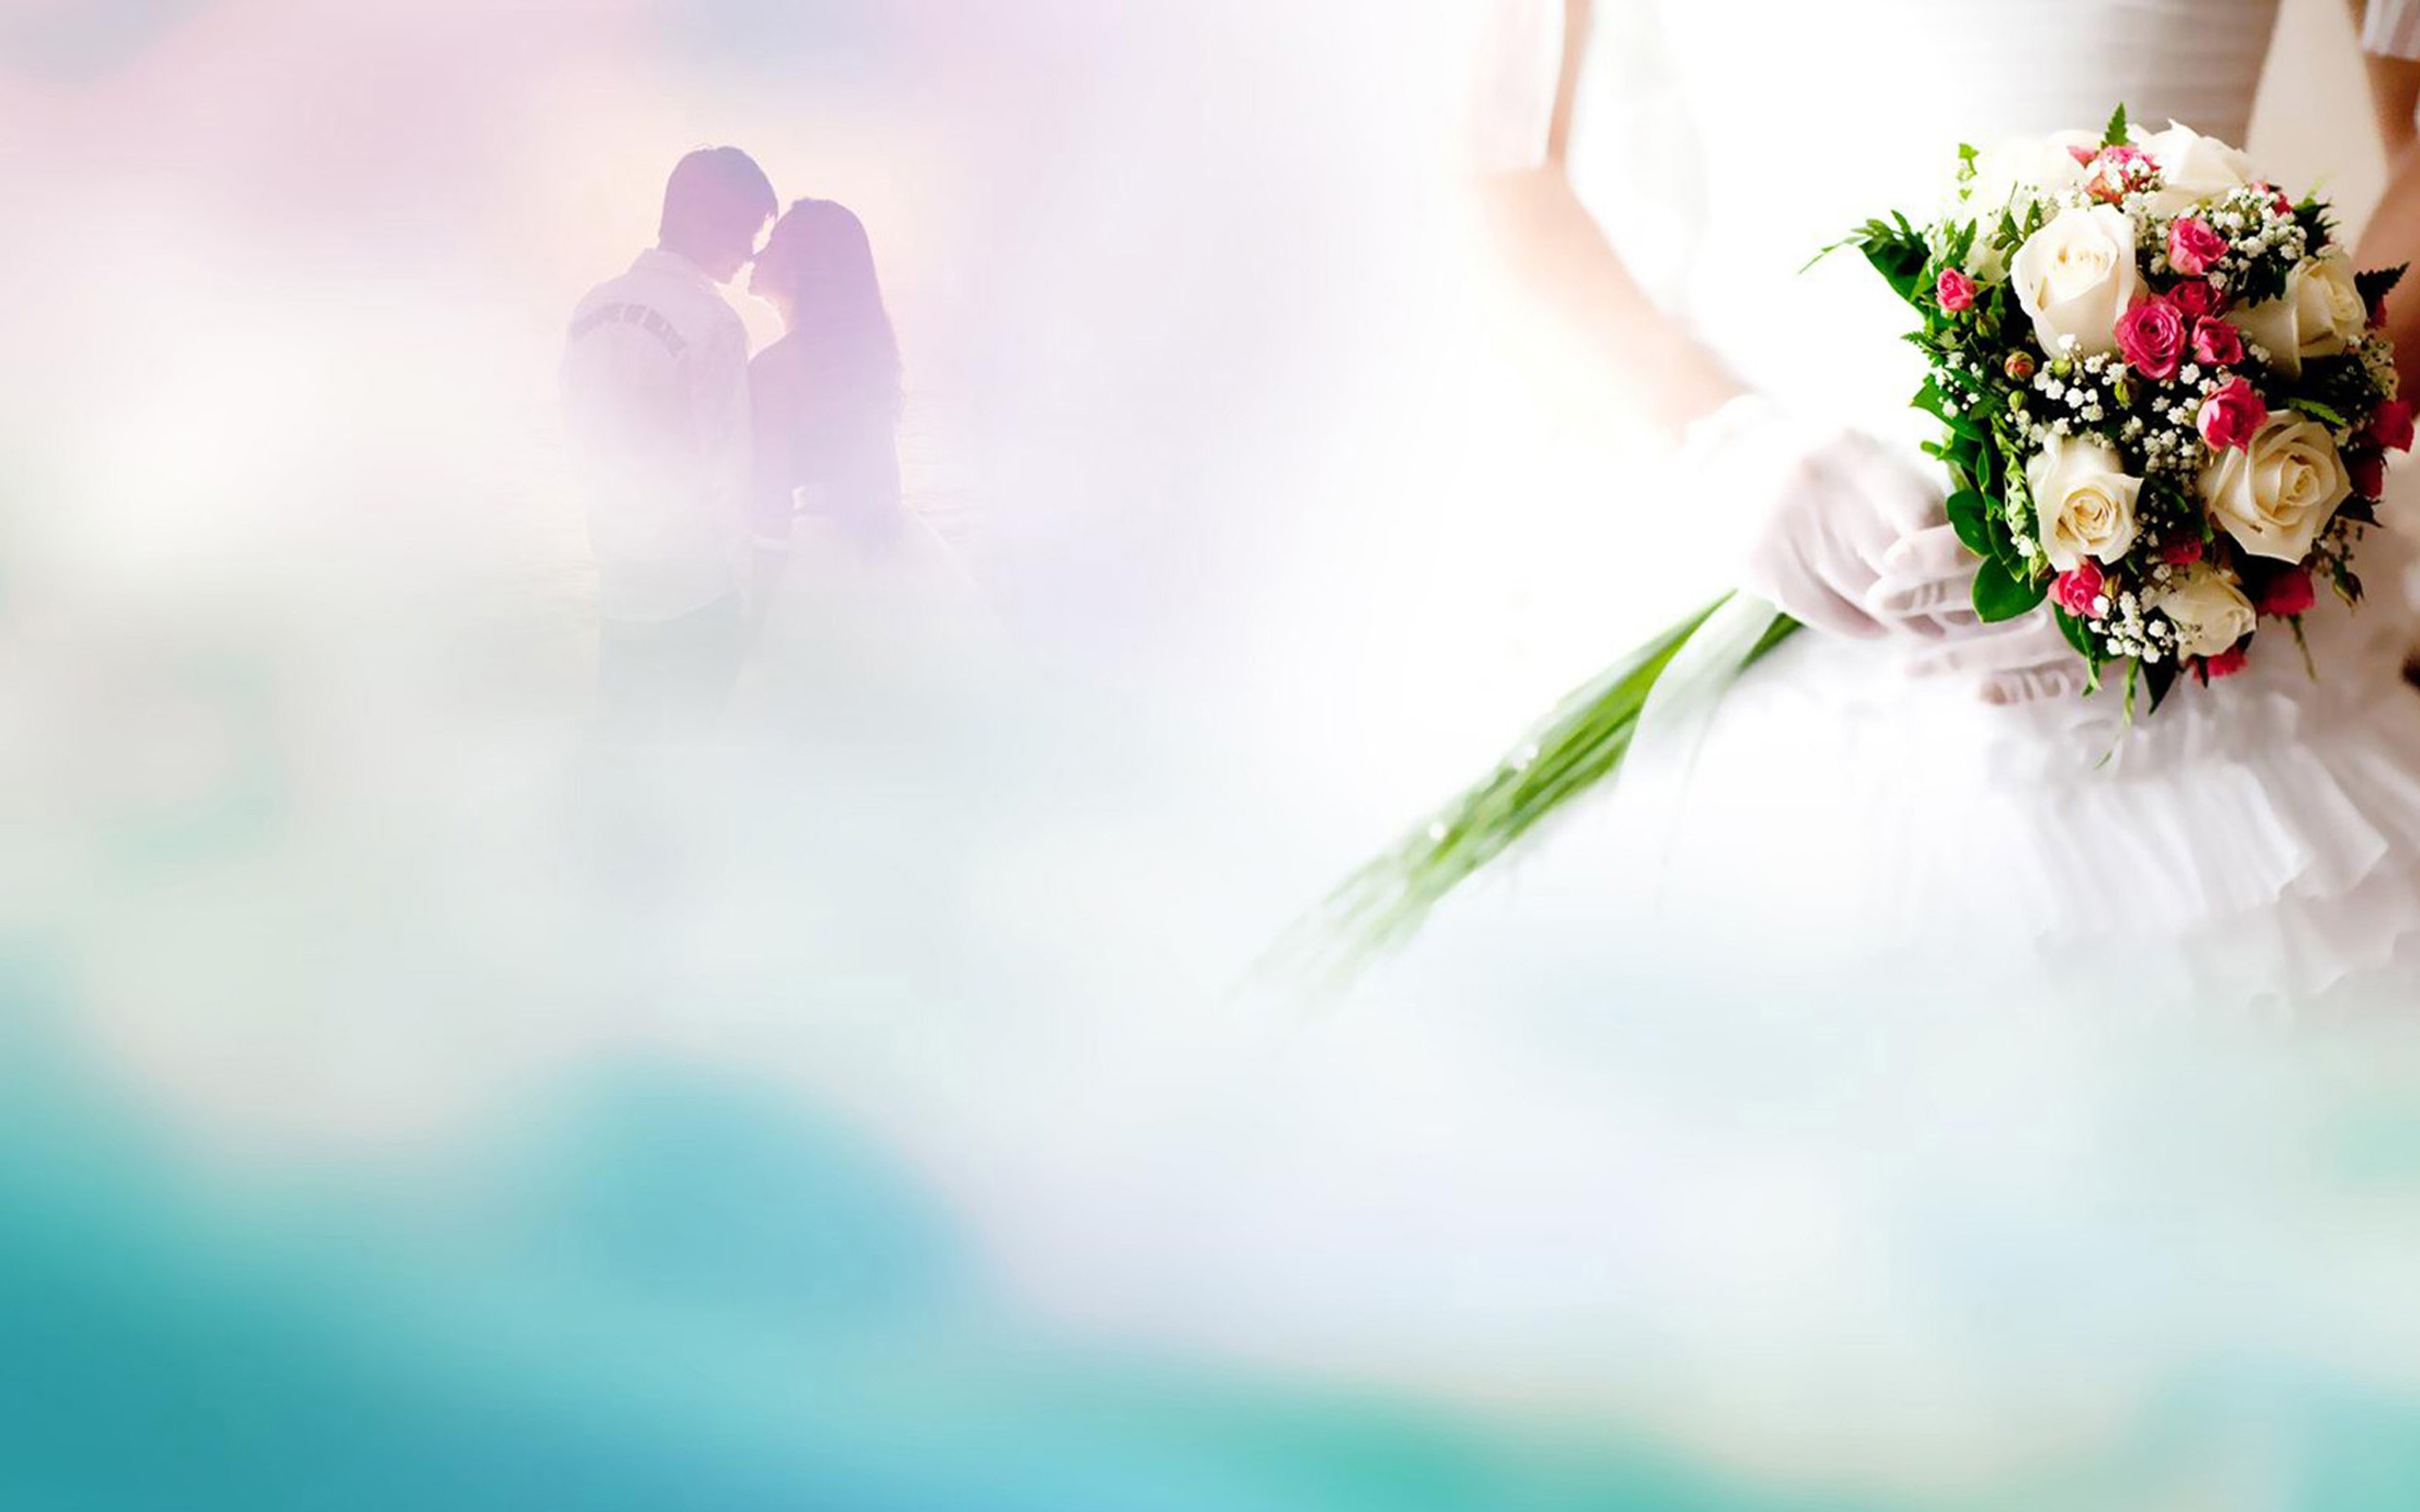 44 wedding backgrounds 183�� download free beautiful full hd